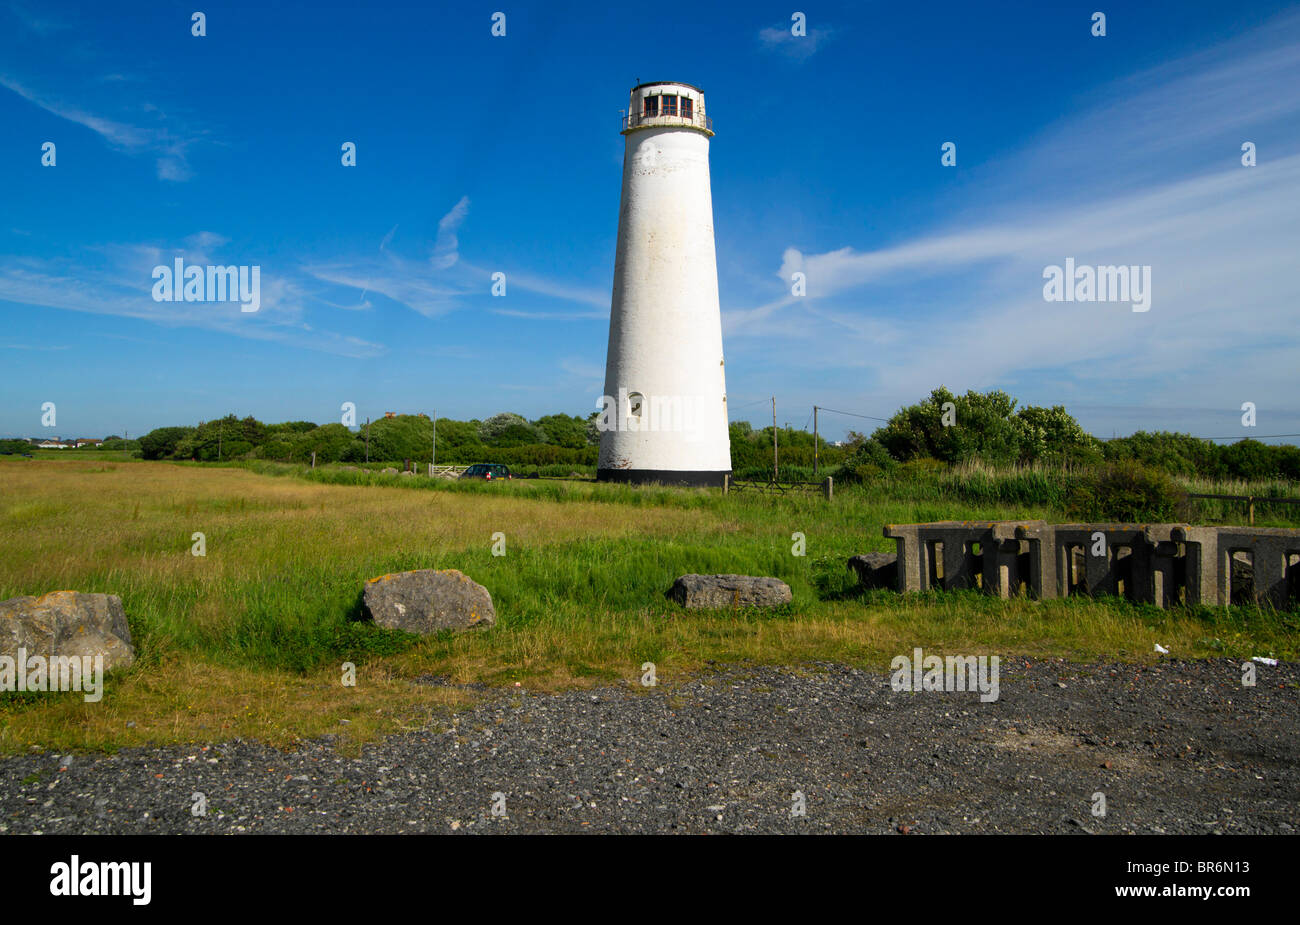 Leasowe Lighthouse was built in 1763 and is the oldest brick-built lighthouse in Britain. - Stock Image